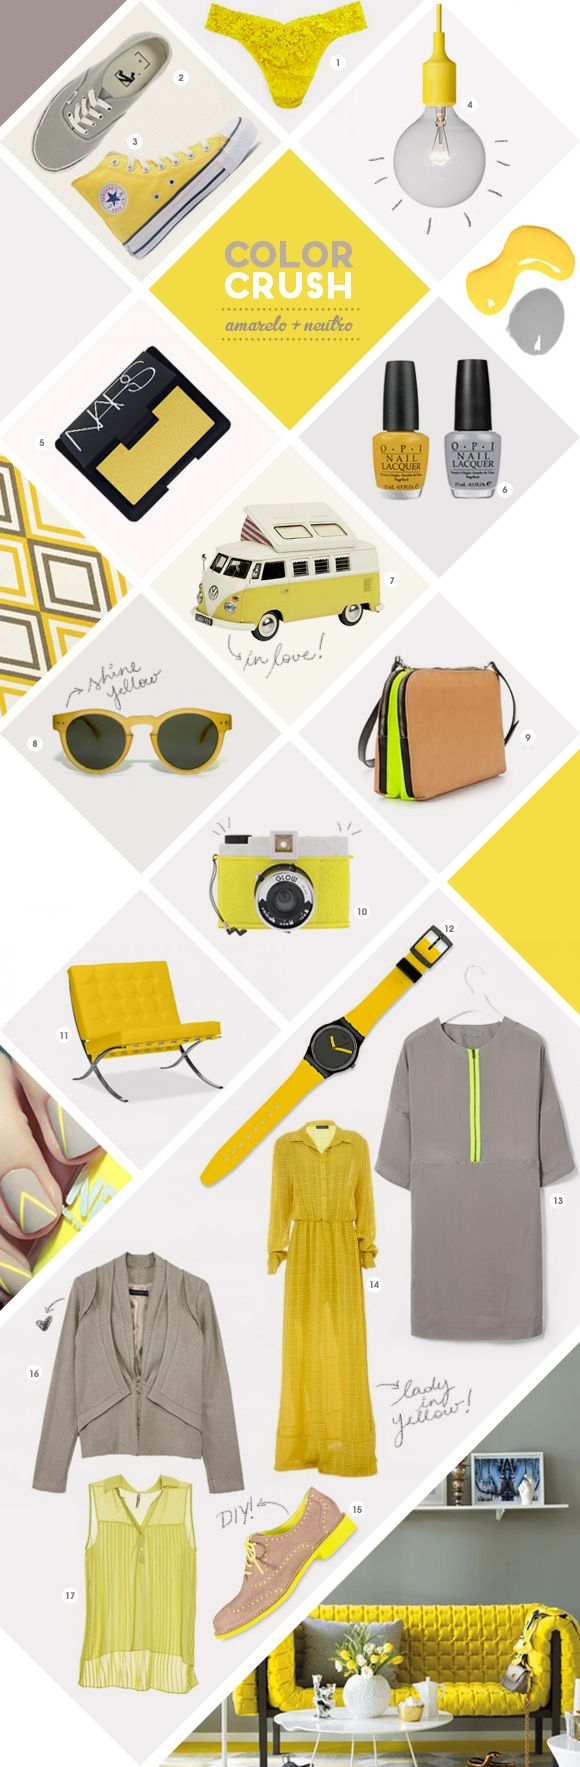 Color Crush: Amarelo & Neutro